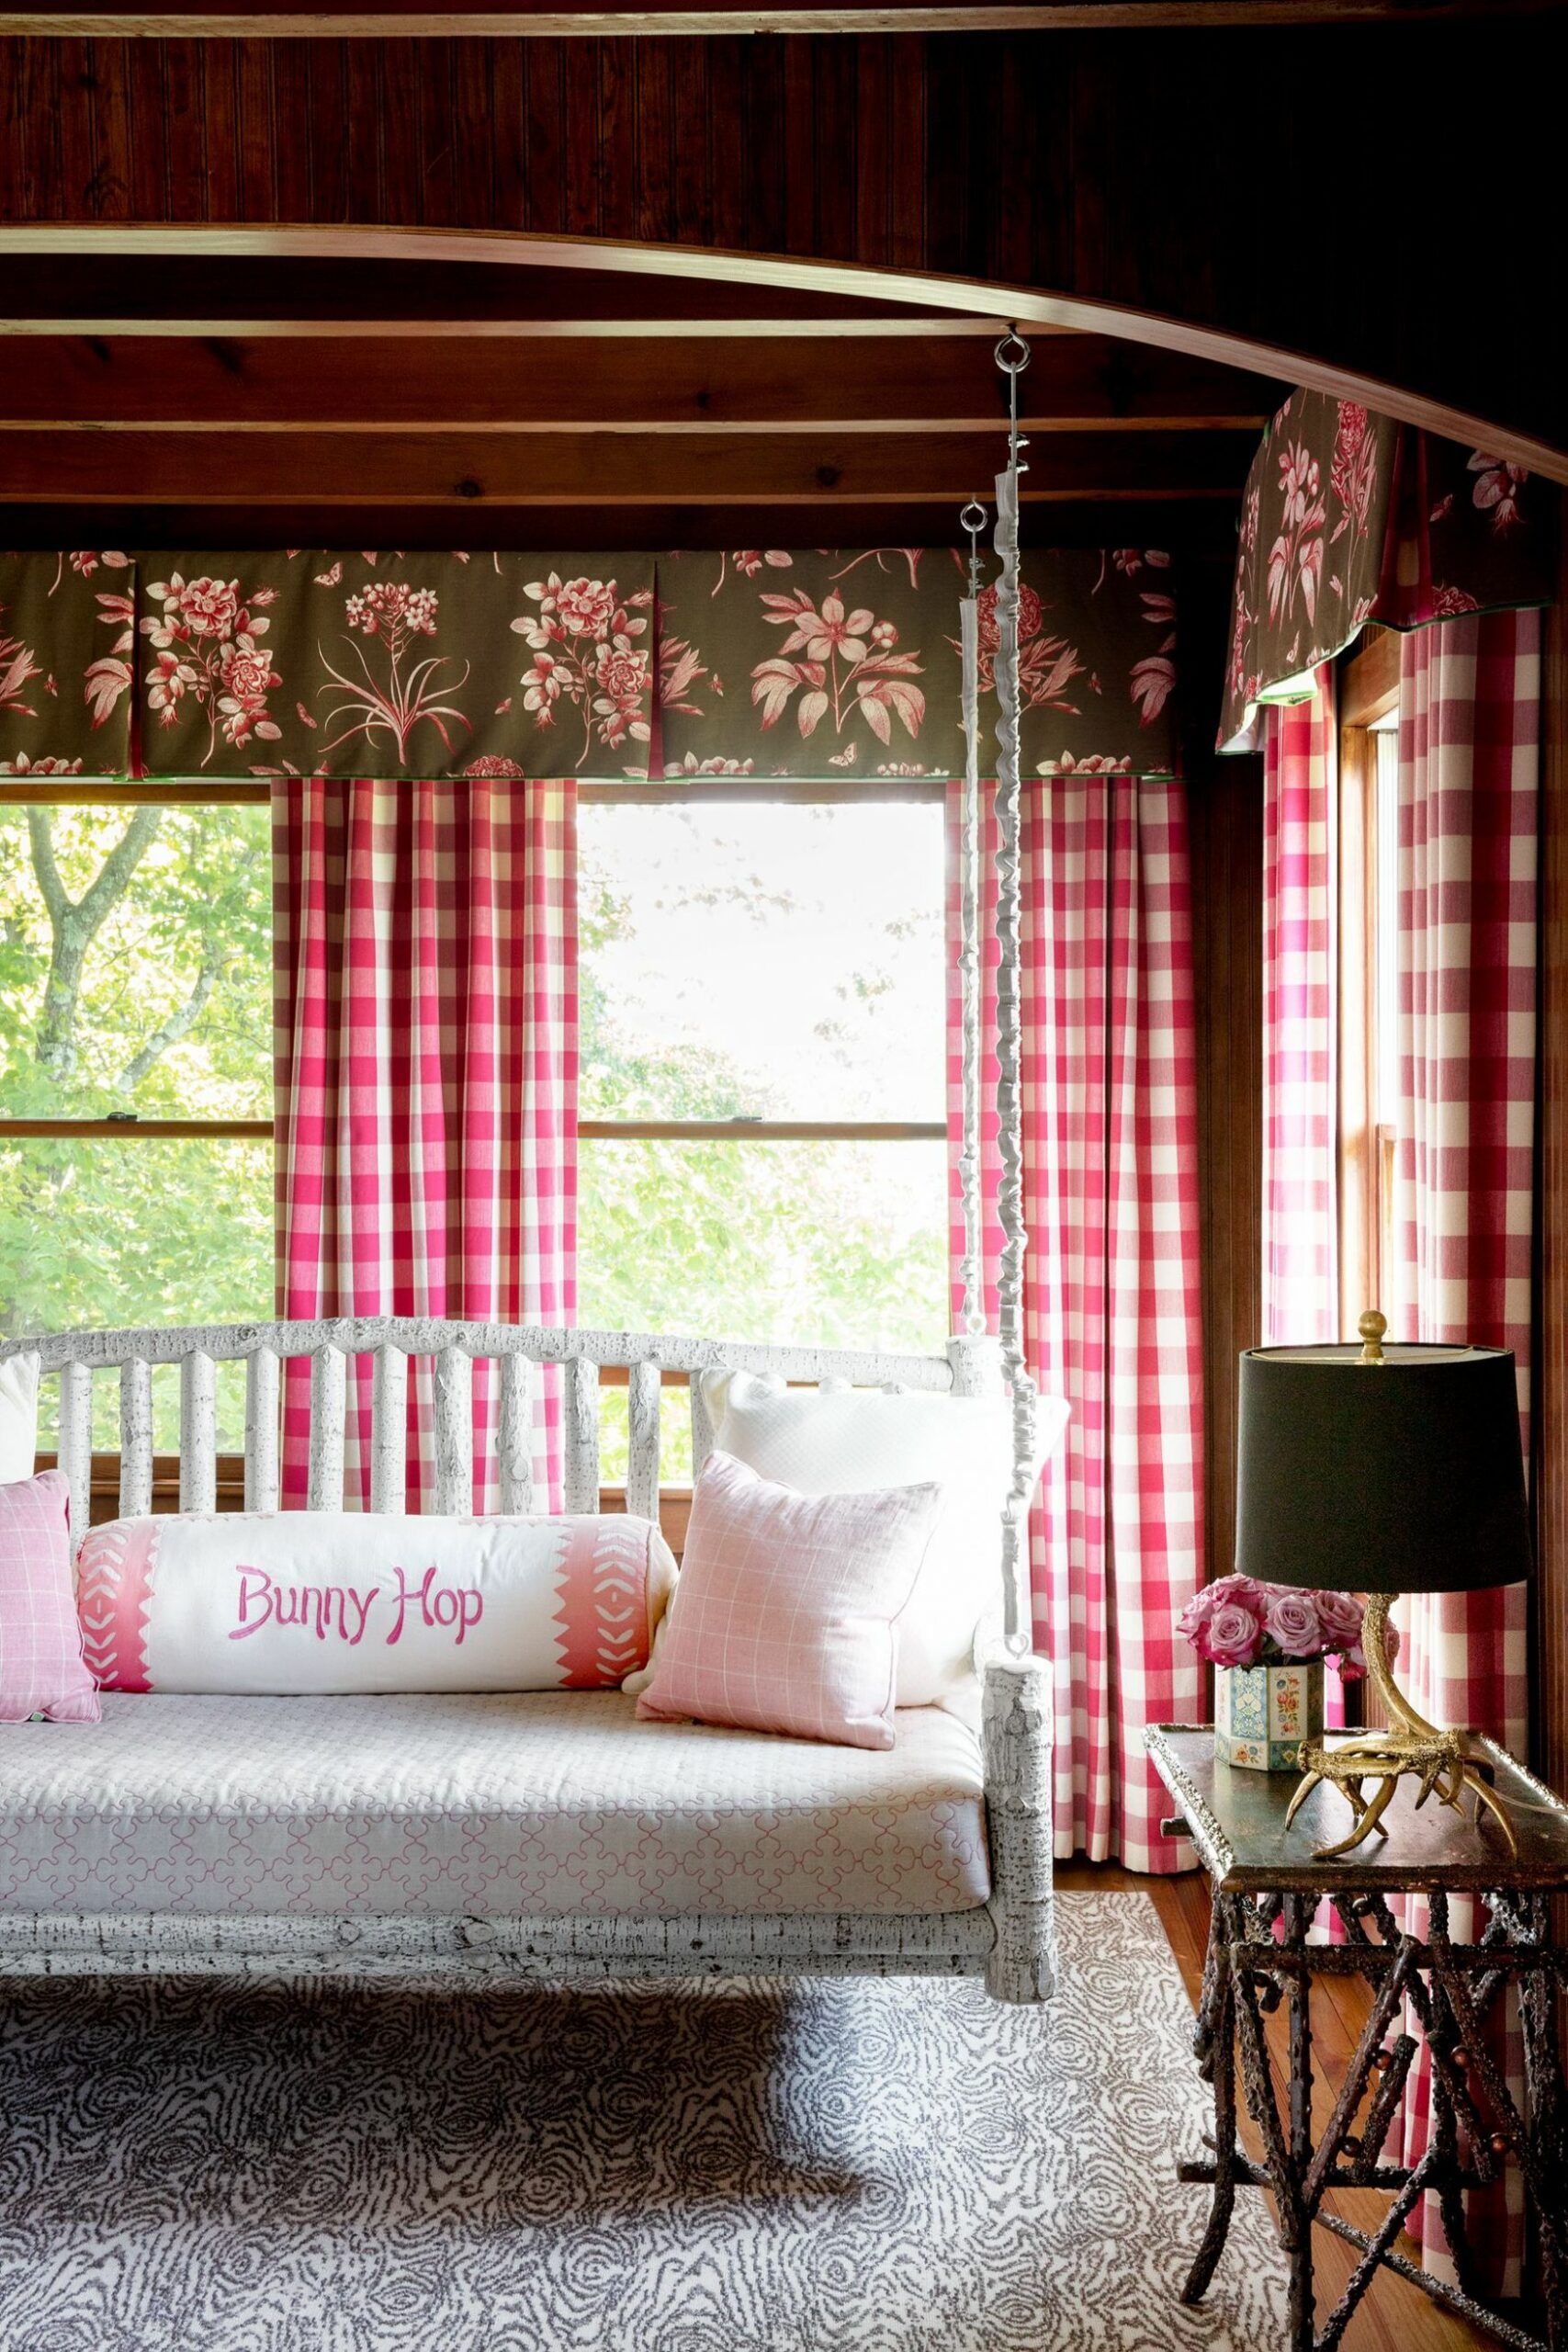 12 Best Window Treatment Ideas - Window Coverings, Curtains, & Blinds